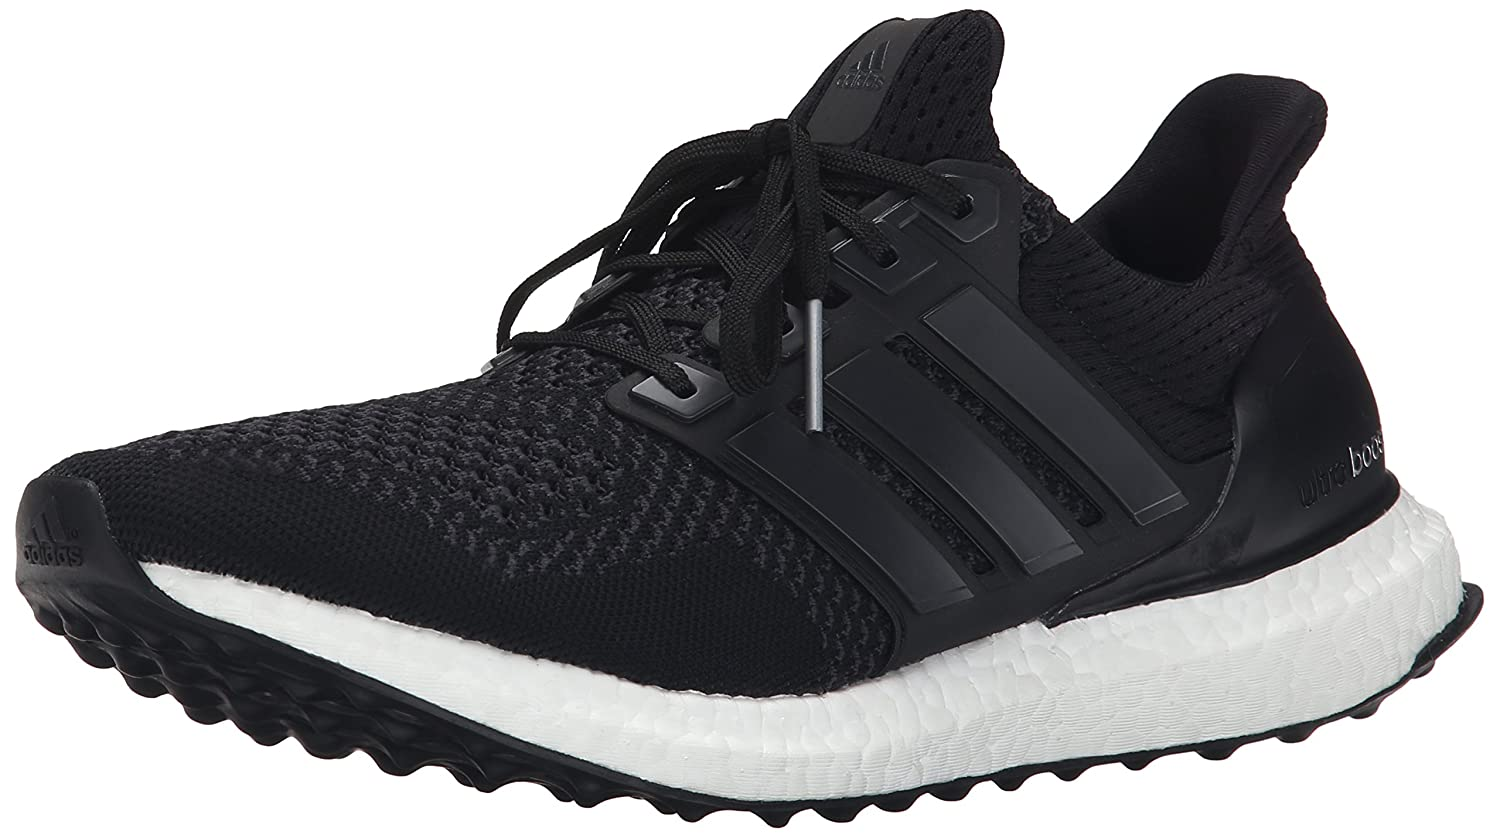 adidas Performance Men's Ultra Boost M Running Shoe B00WW7LIVY 7.5 M US|Black/Black/Solar Yellow